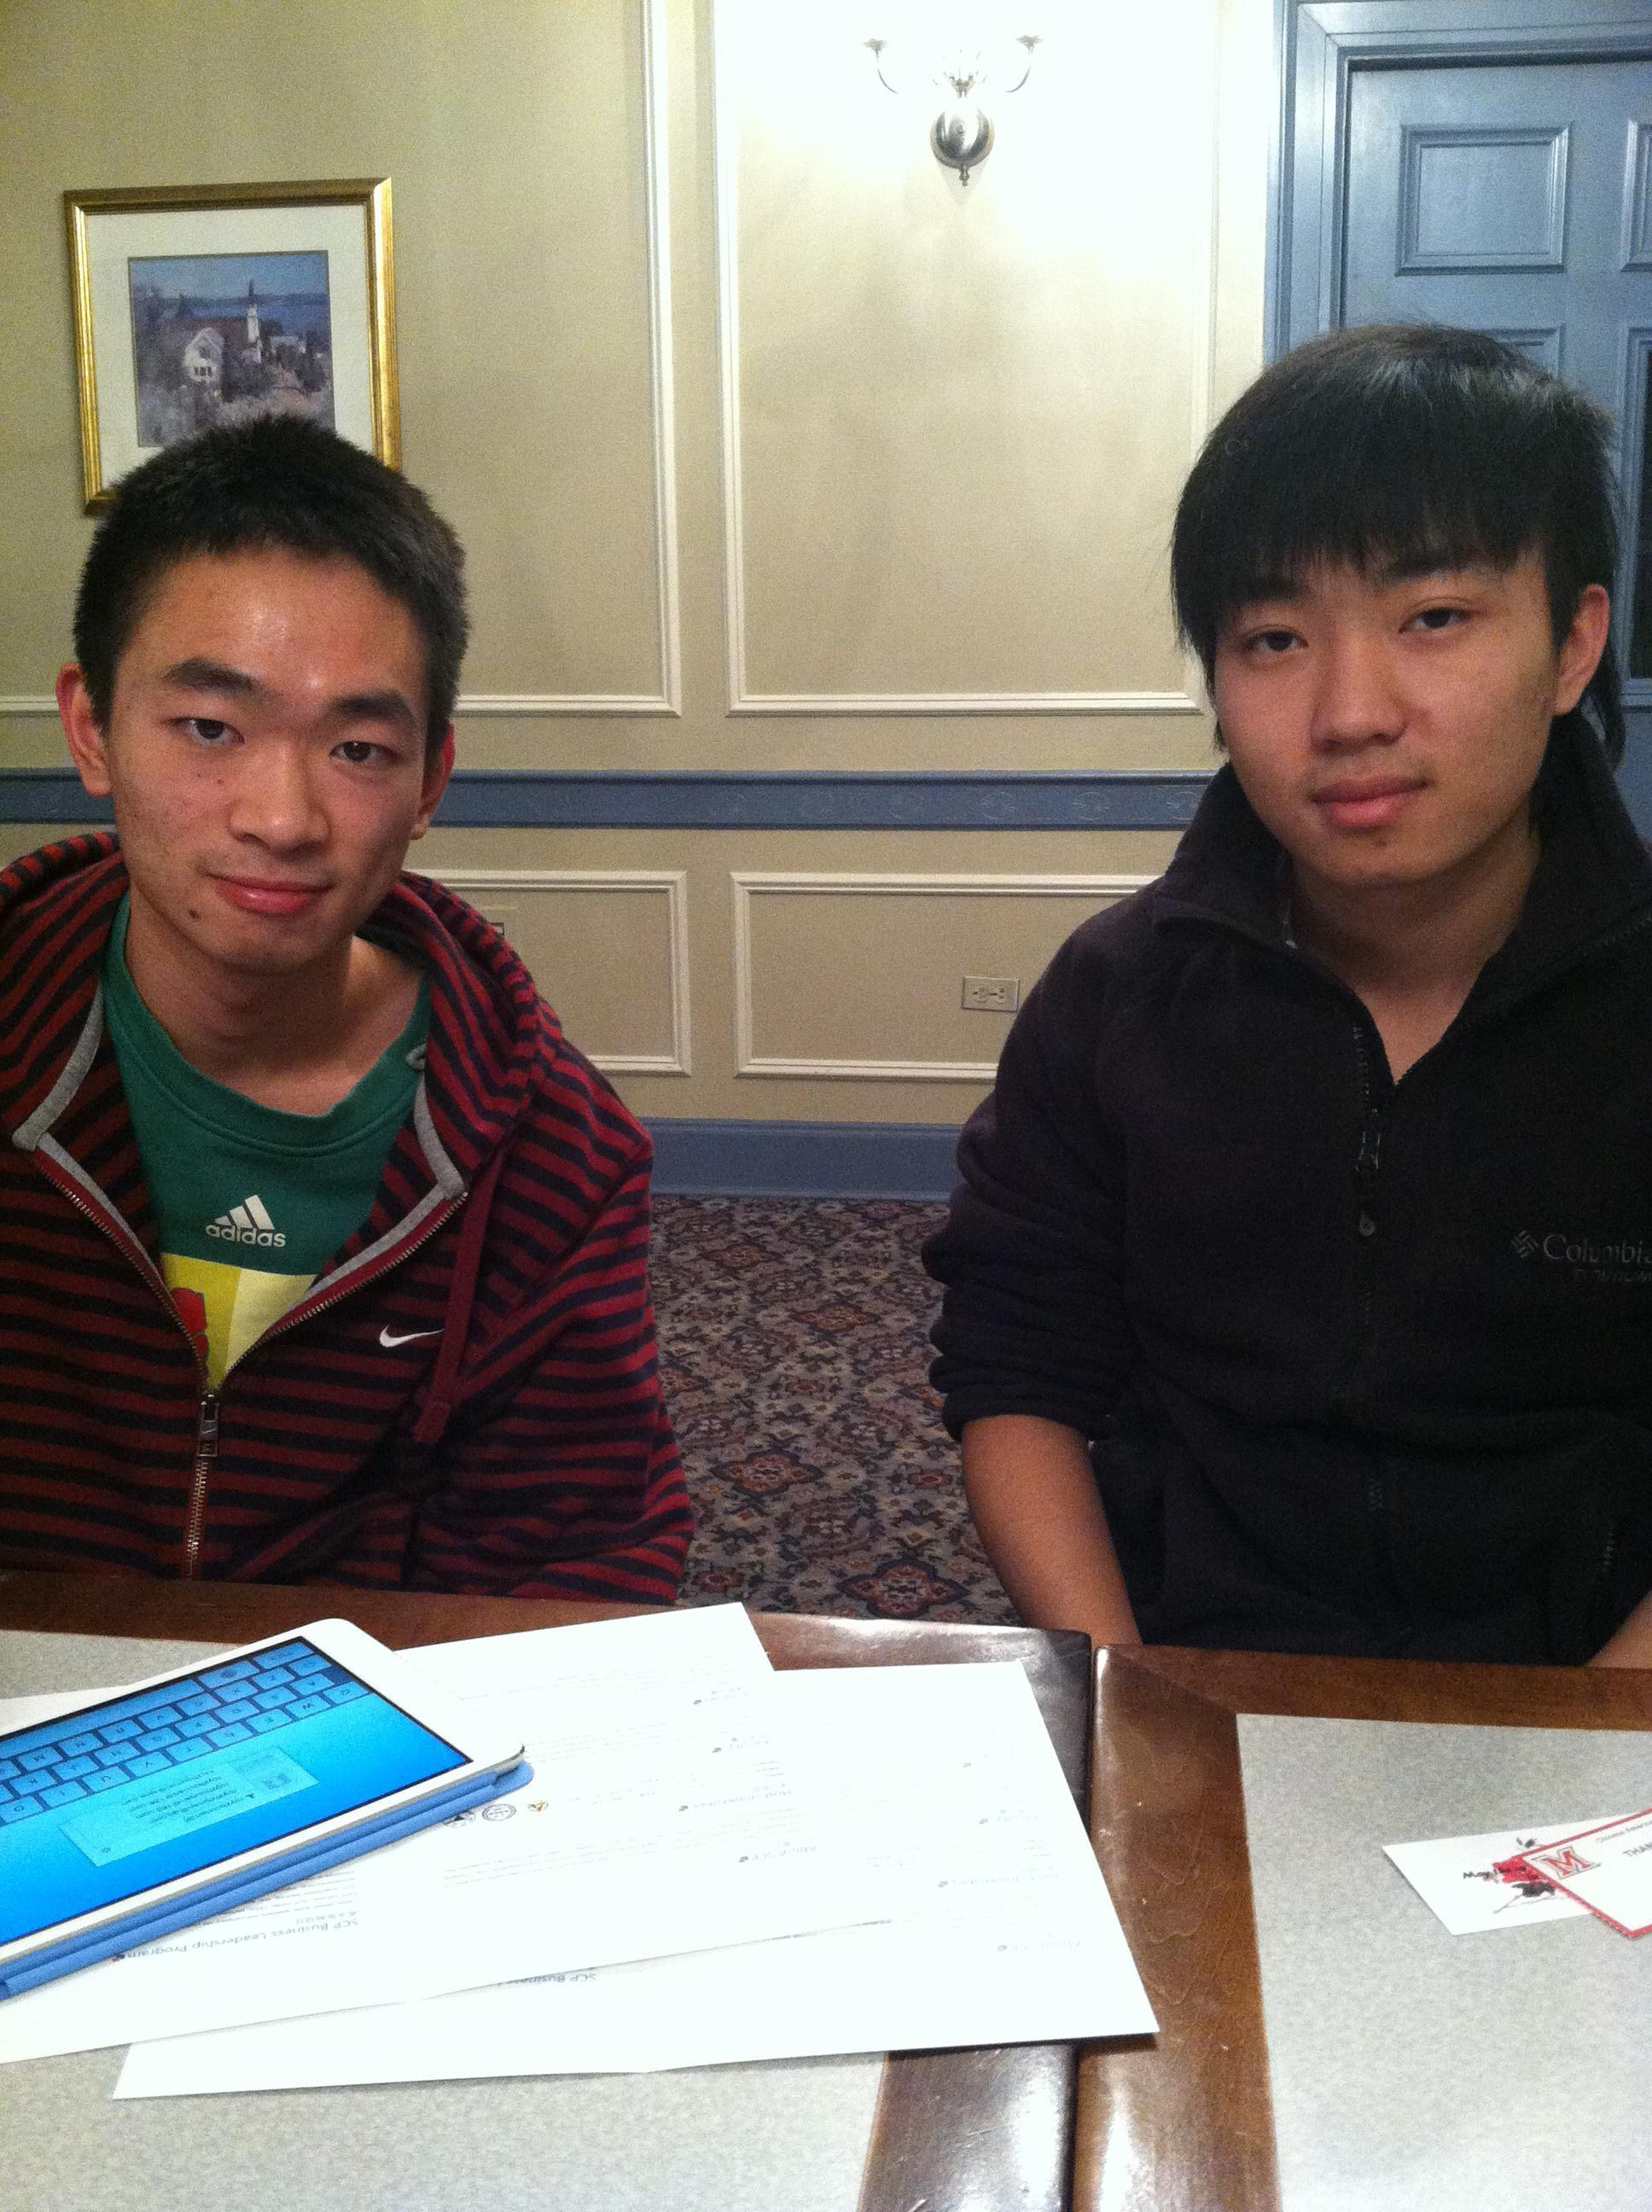 At Miami University, Increasing Numbers of Chinese Students